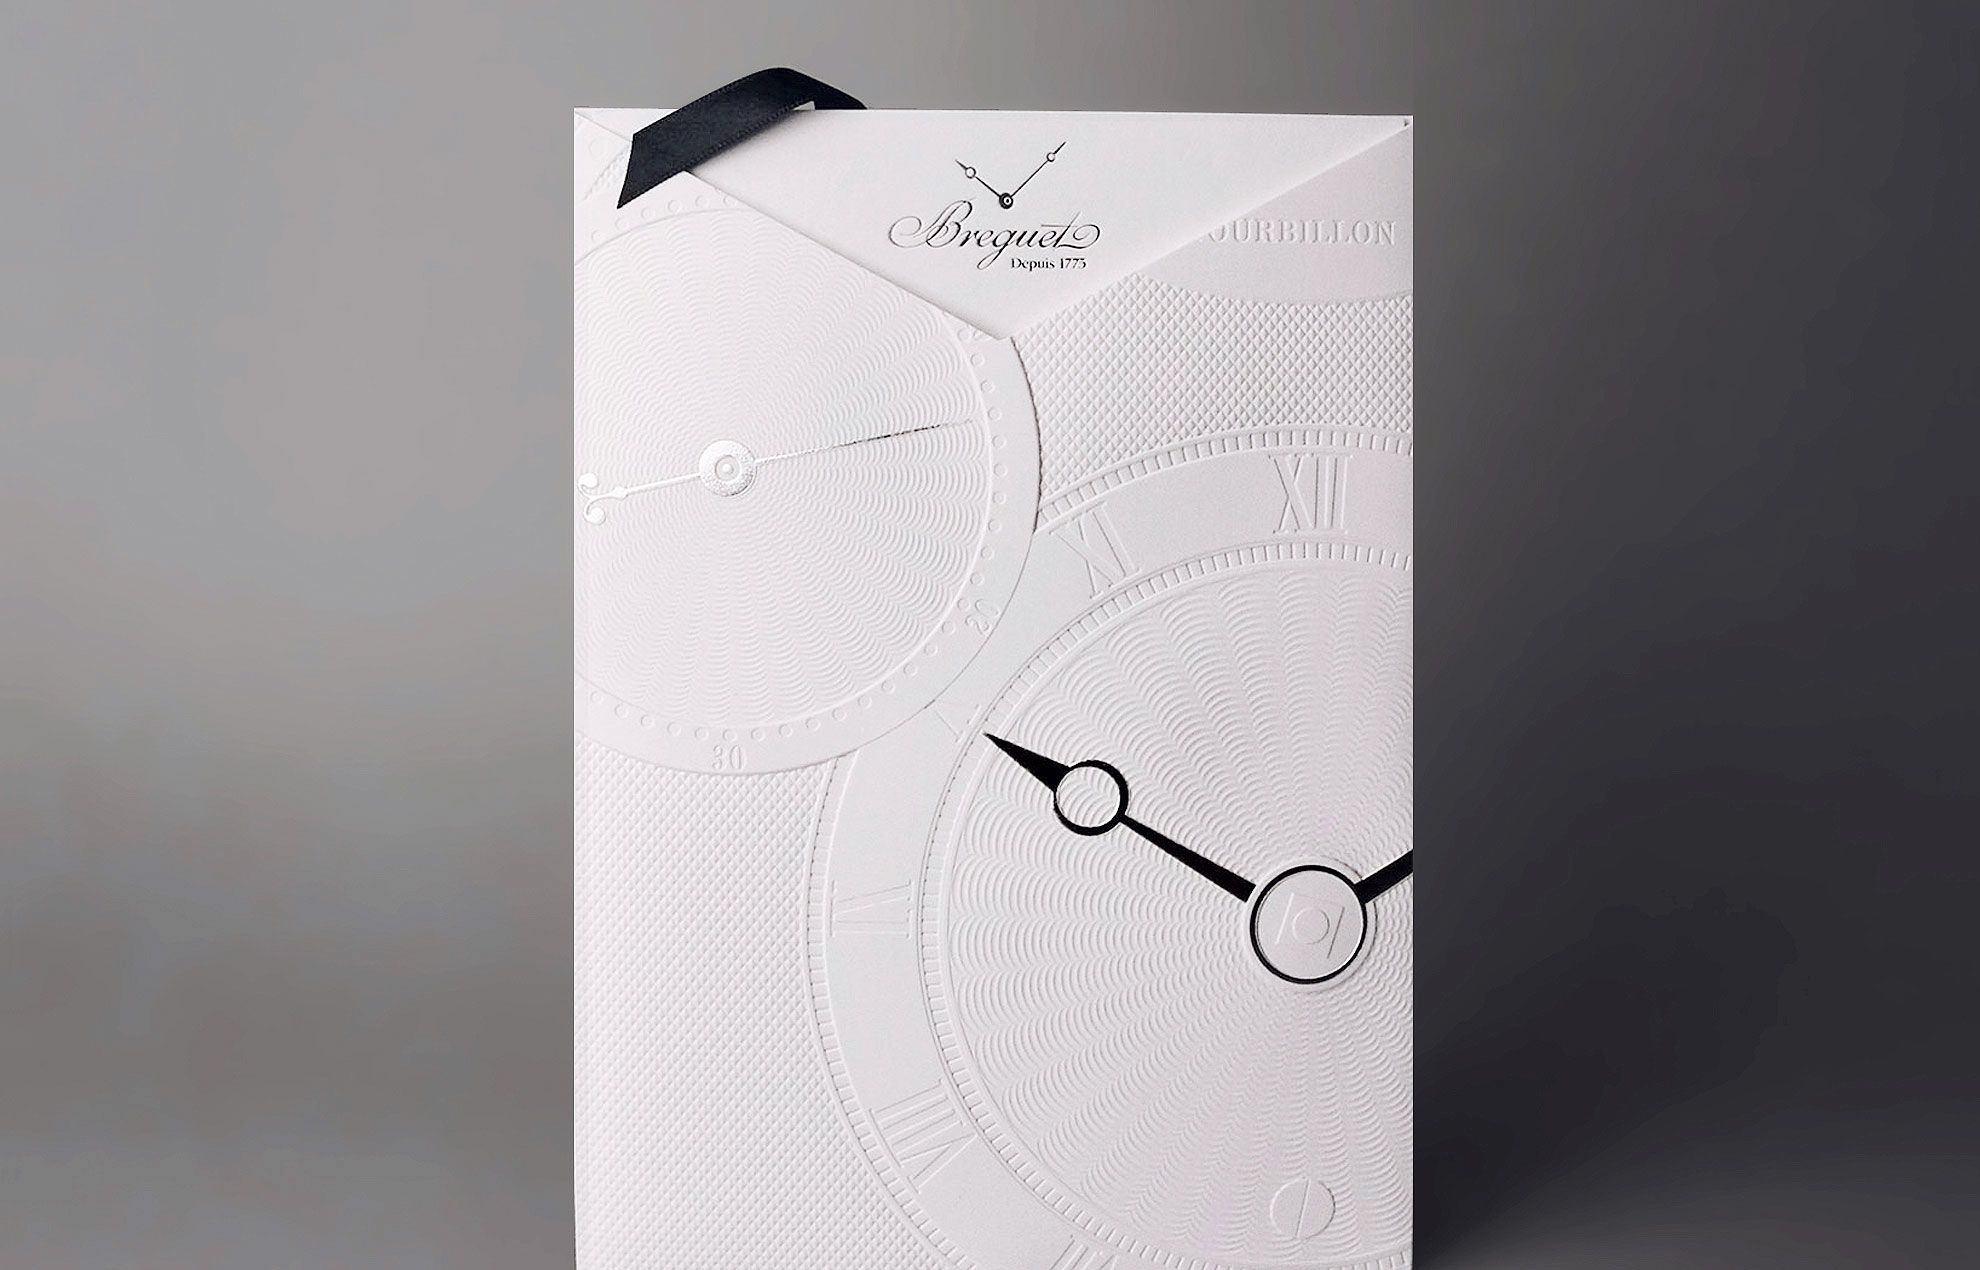 Breguet exhibition - Breguet Invitation card